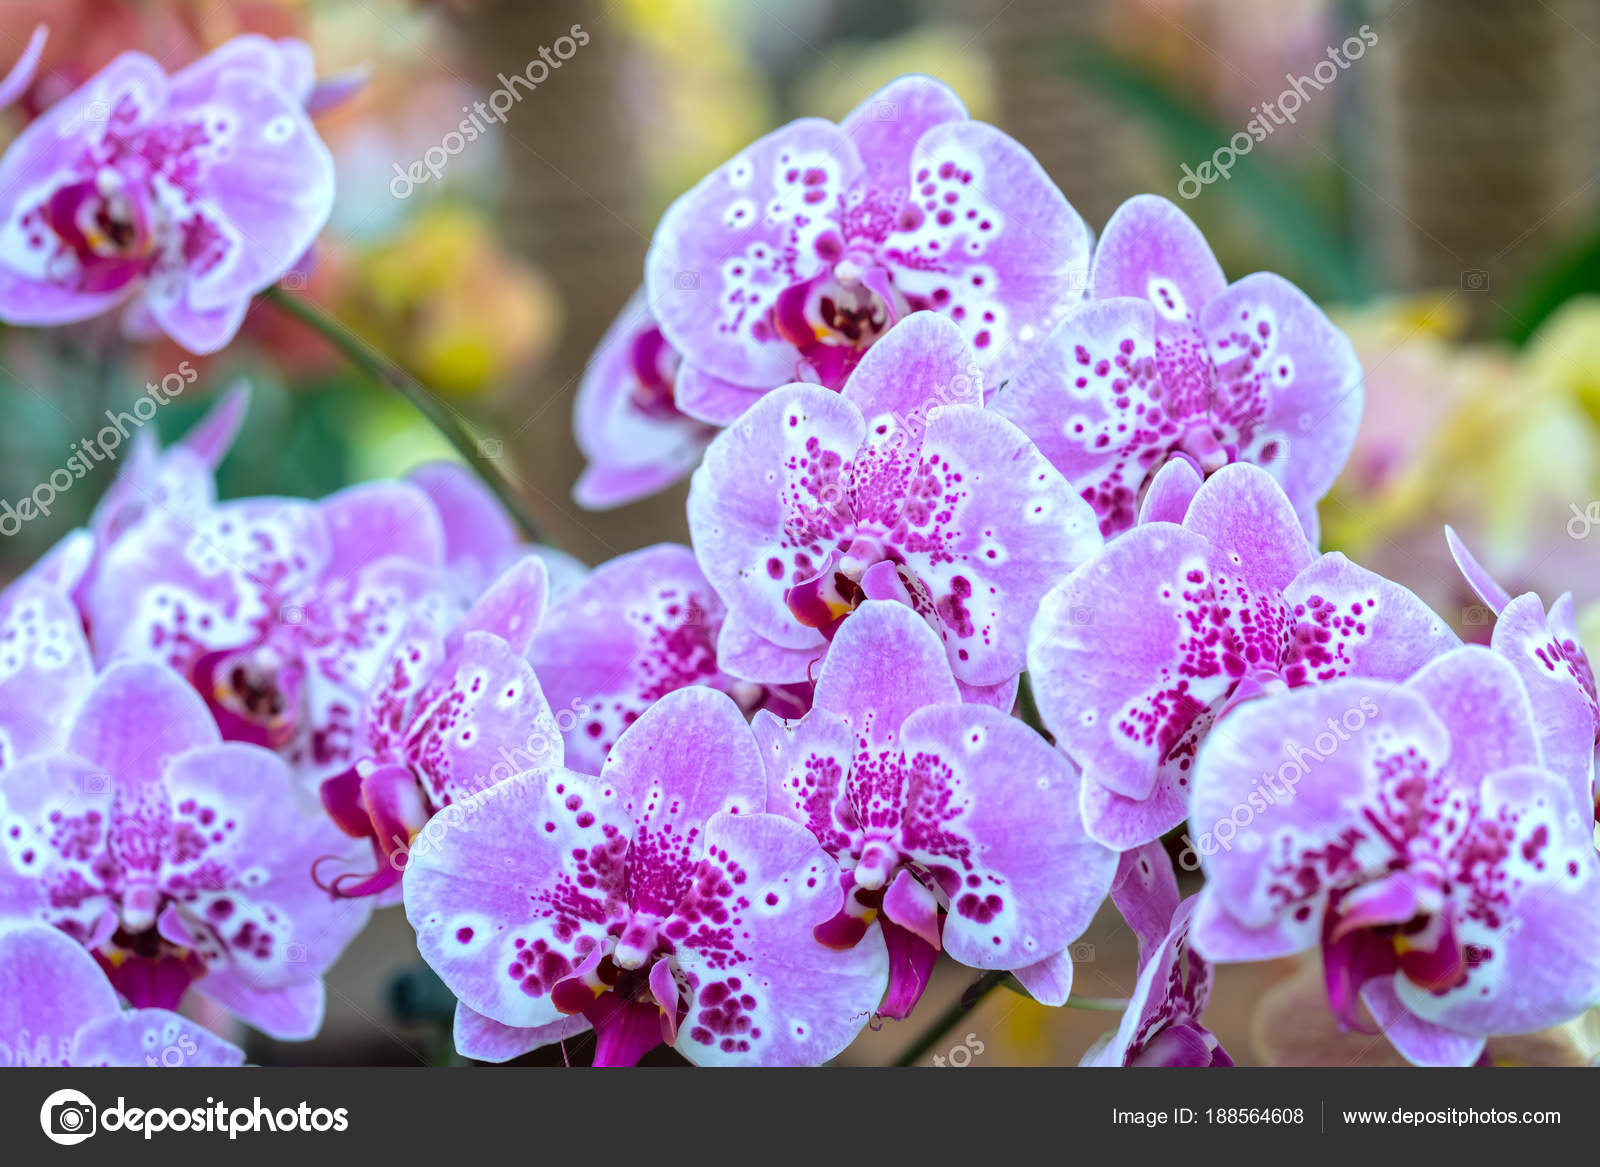 Phalaenopsis Flowers Bloom Spring Adorn Beauty Nature Most Beautiful